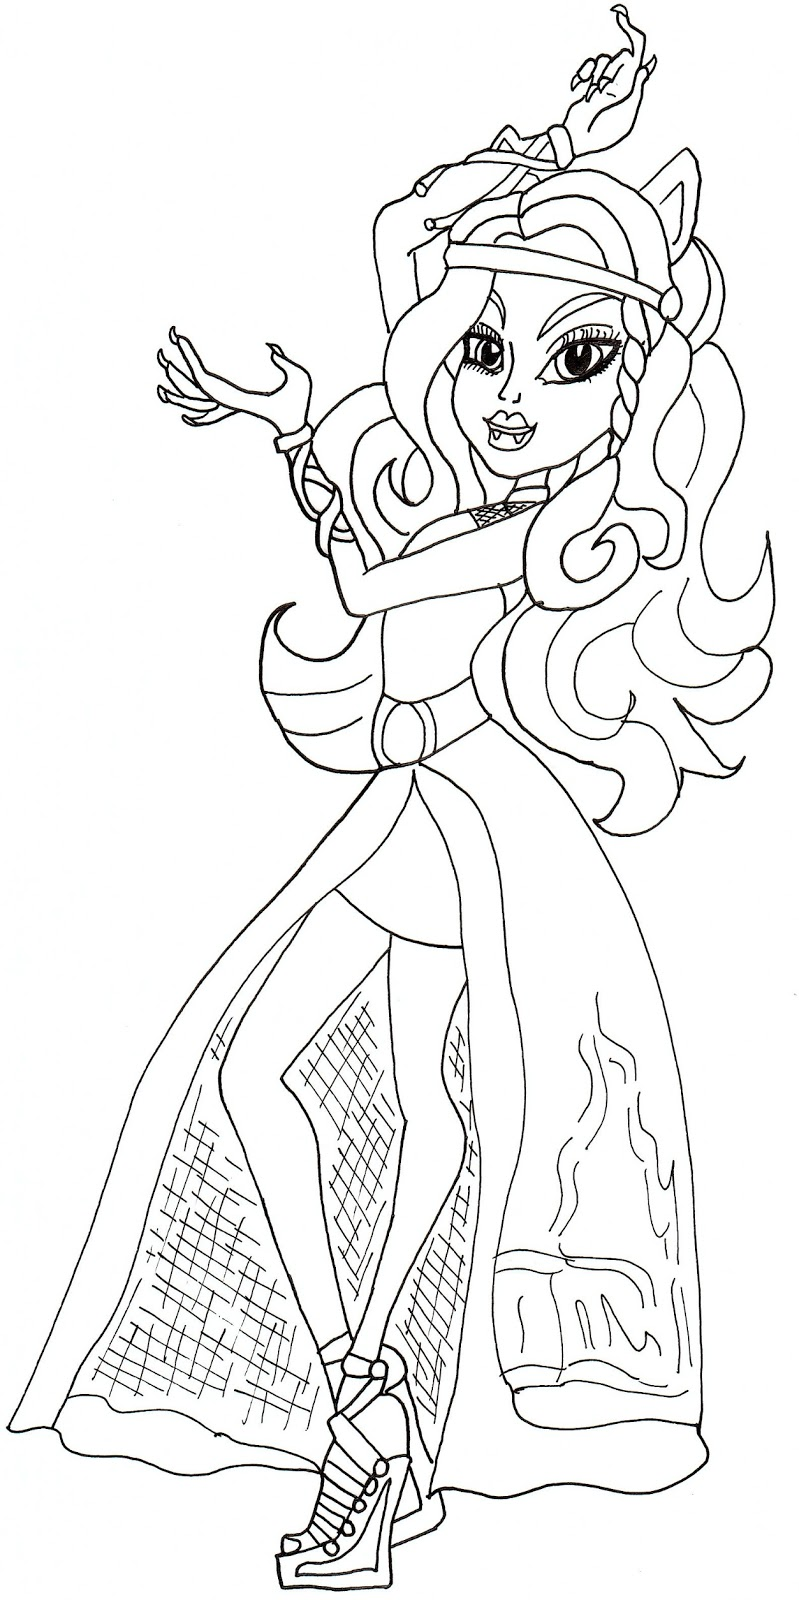 Free printable monster high coloring pages june 2013 for Monster high printables coloring pages